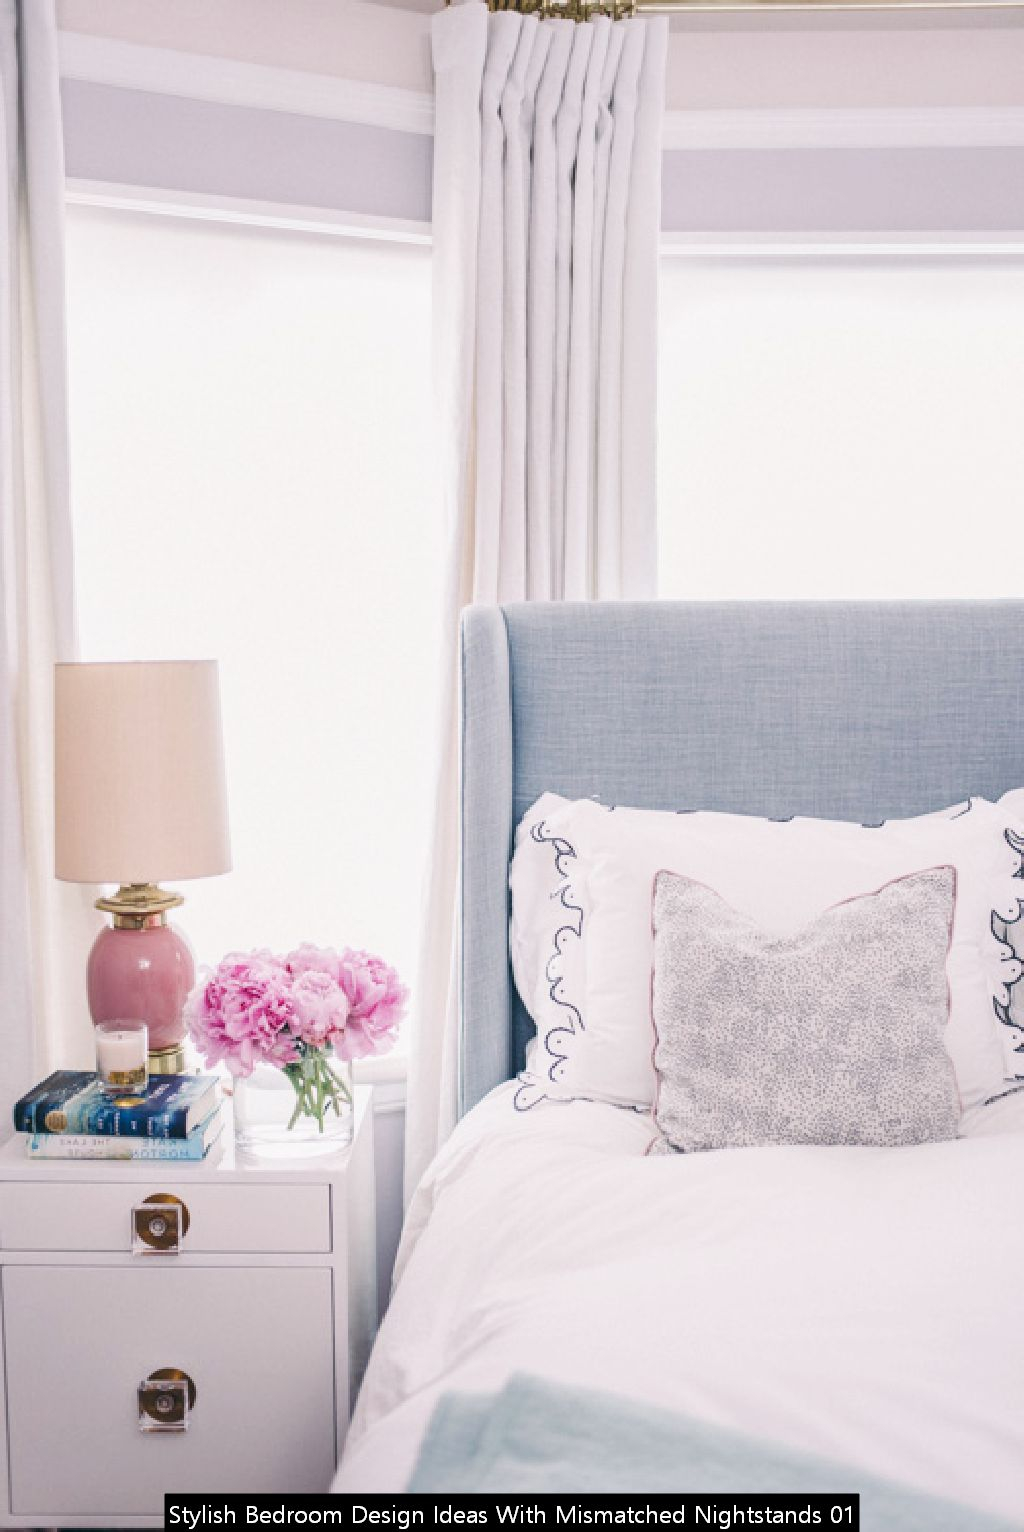 Stylish Bedroom Design Ideas With Mismatched Nightstands 01